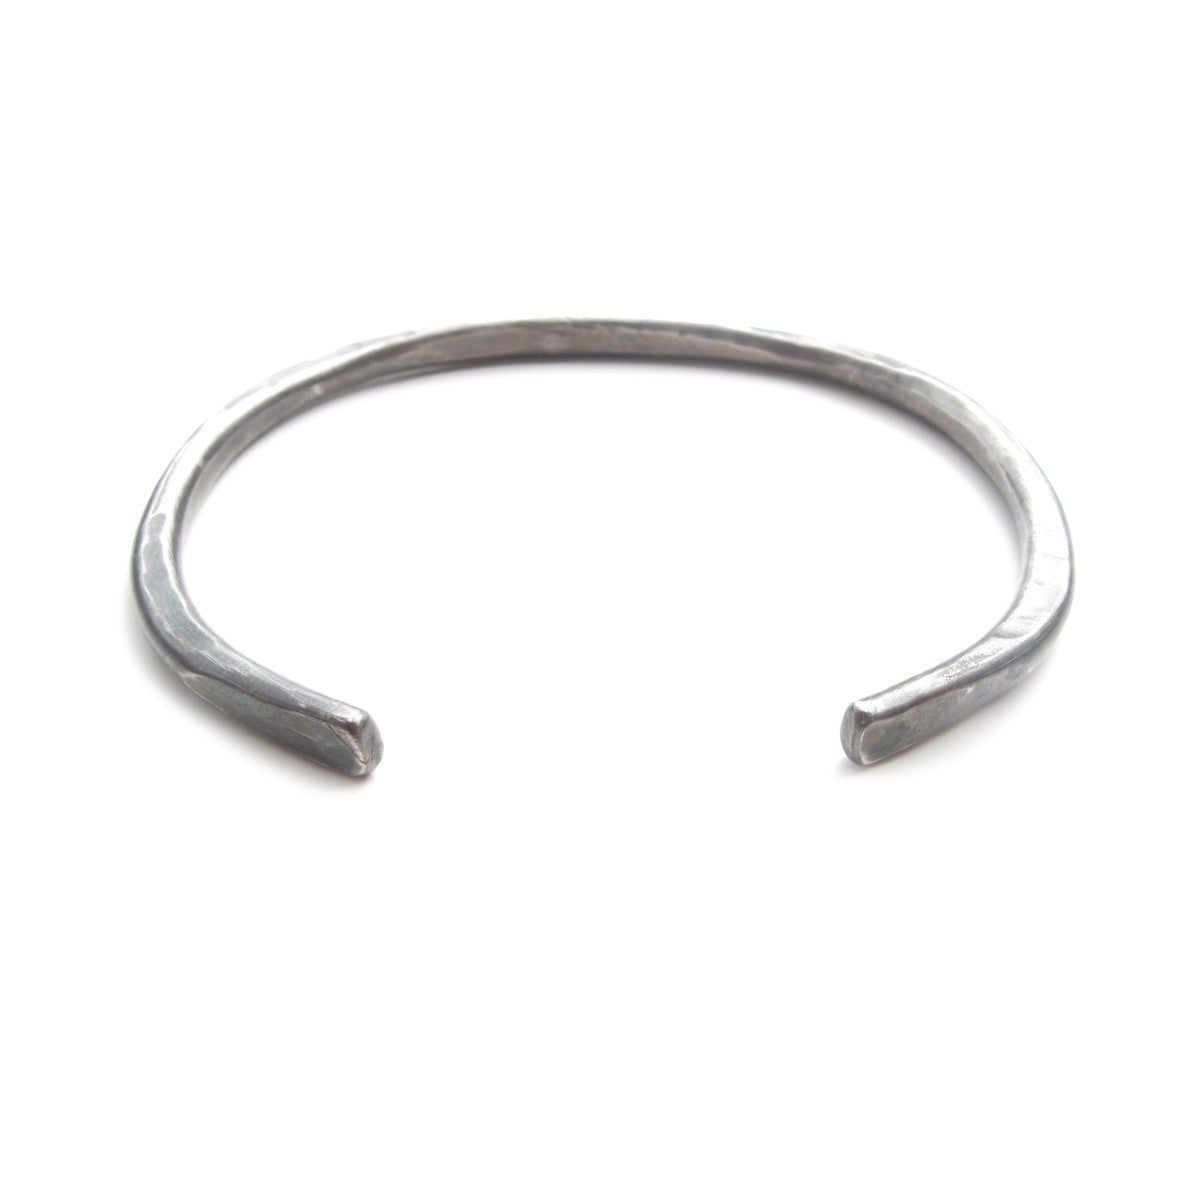 mens-jewelry-cuff-bracelet-sterling-silver-handcrafted-oxidized